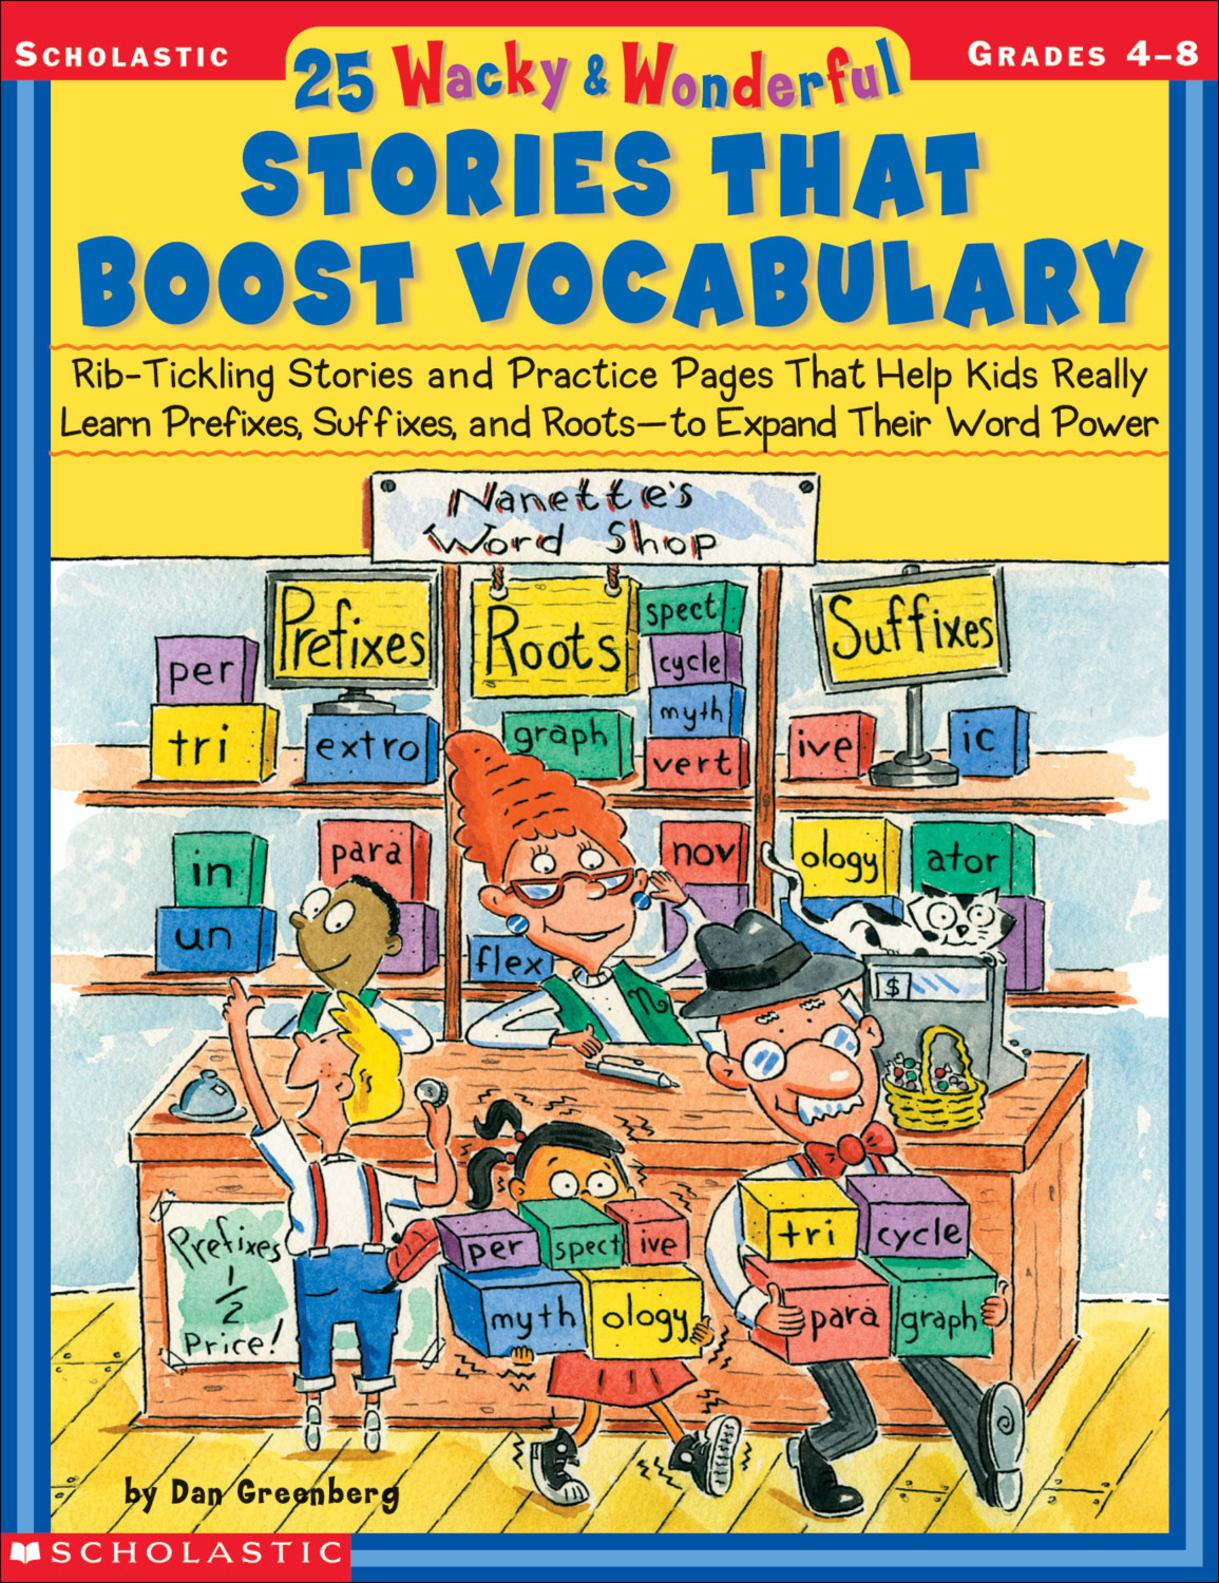 Calameo 25 Wacky And Wonderful Stories That Boost Vocabulary